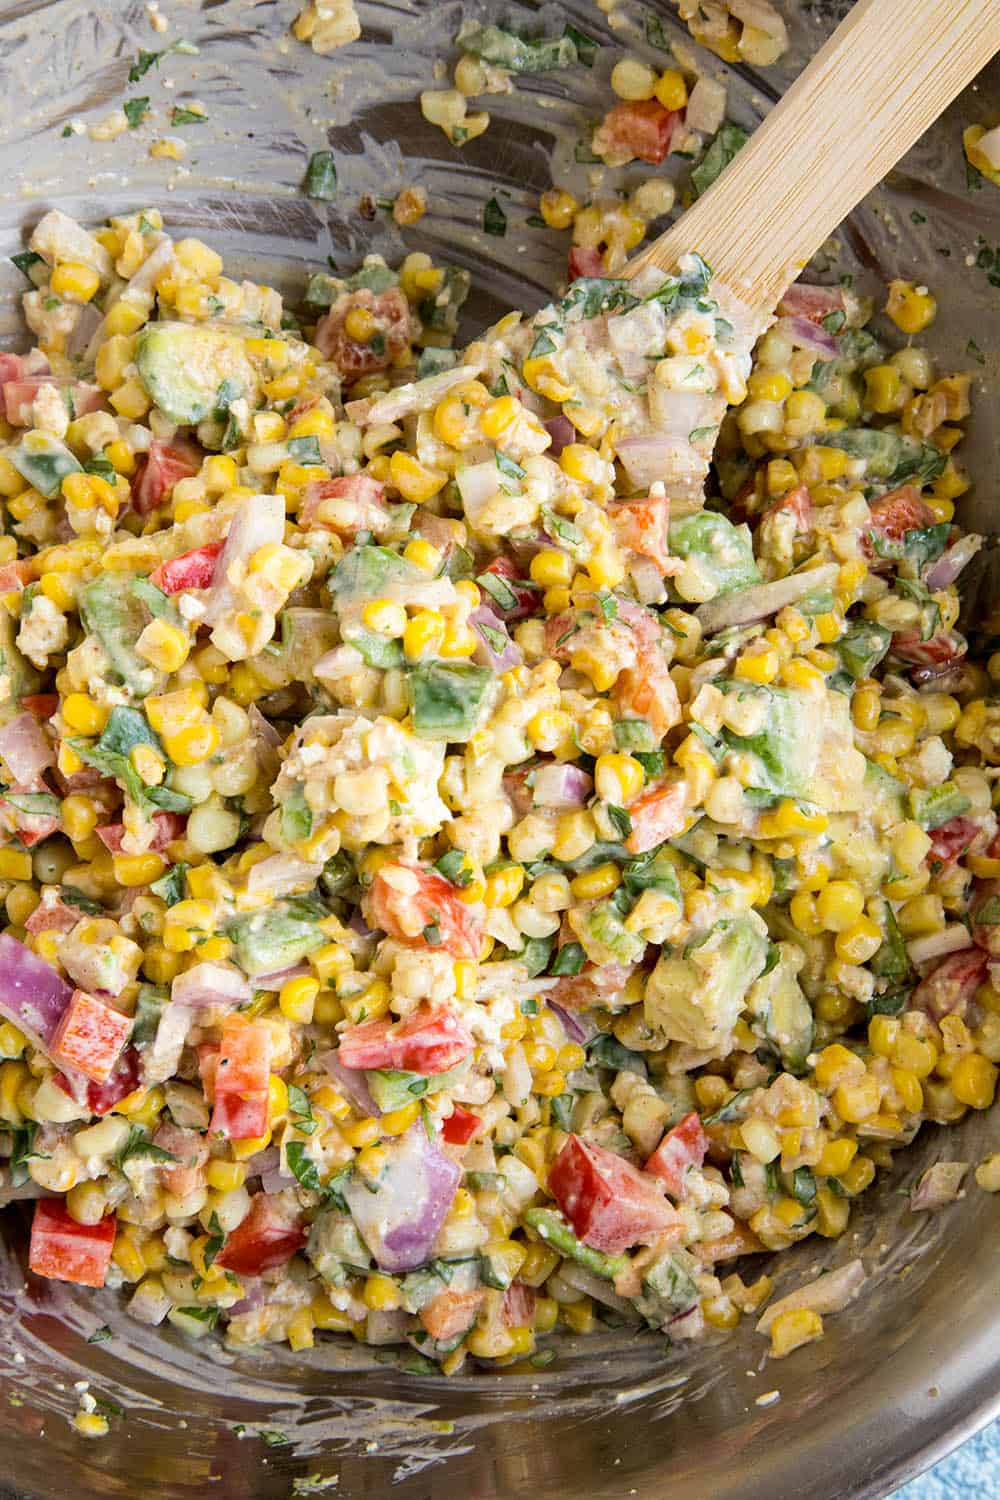 Mixing the elotes salad ingredients